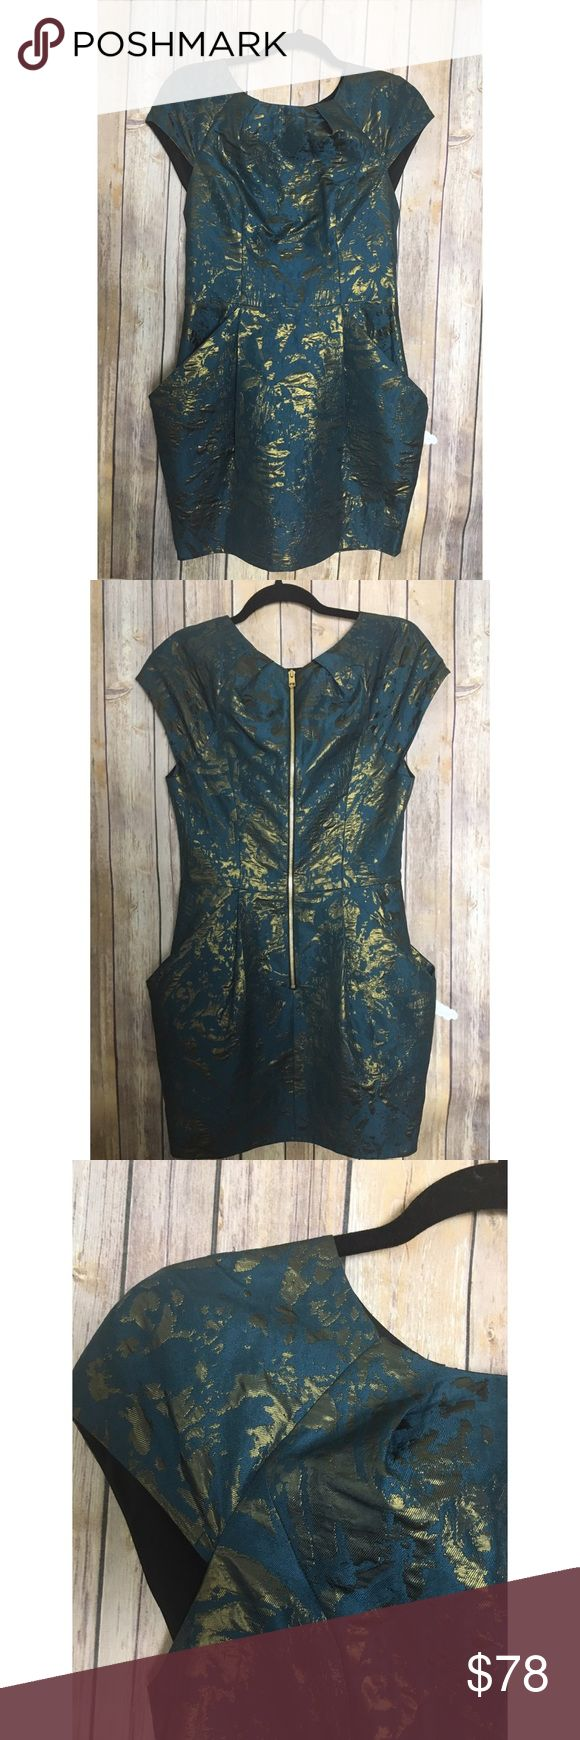 """AllSaints opulence baroque dress size 6 New without tags AllSaints Opulence metallic baroque women's dress size 6. Cap sleeve. Made from Jacquard fabric that has bronze lurex metallic effect. The dress has structures, close fitting bodice with a skirt that is an innovative and defined shape due to the way the material is folded. Absolutely breathtaking. US size 6 UK size 10. Teal and gold. Length from top of shoulder to bottom of dress is 32"""". Armpit to armpit 16"""". Waist about 28"""" All Saints…"""